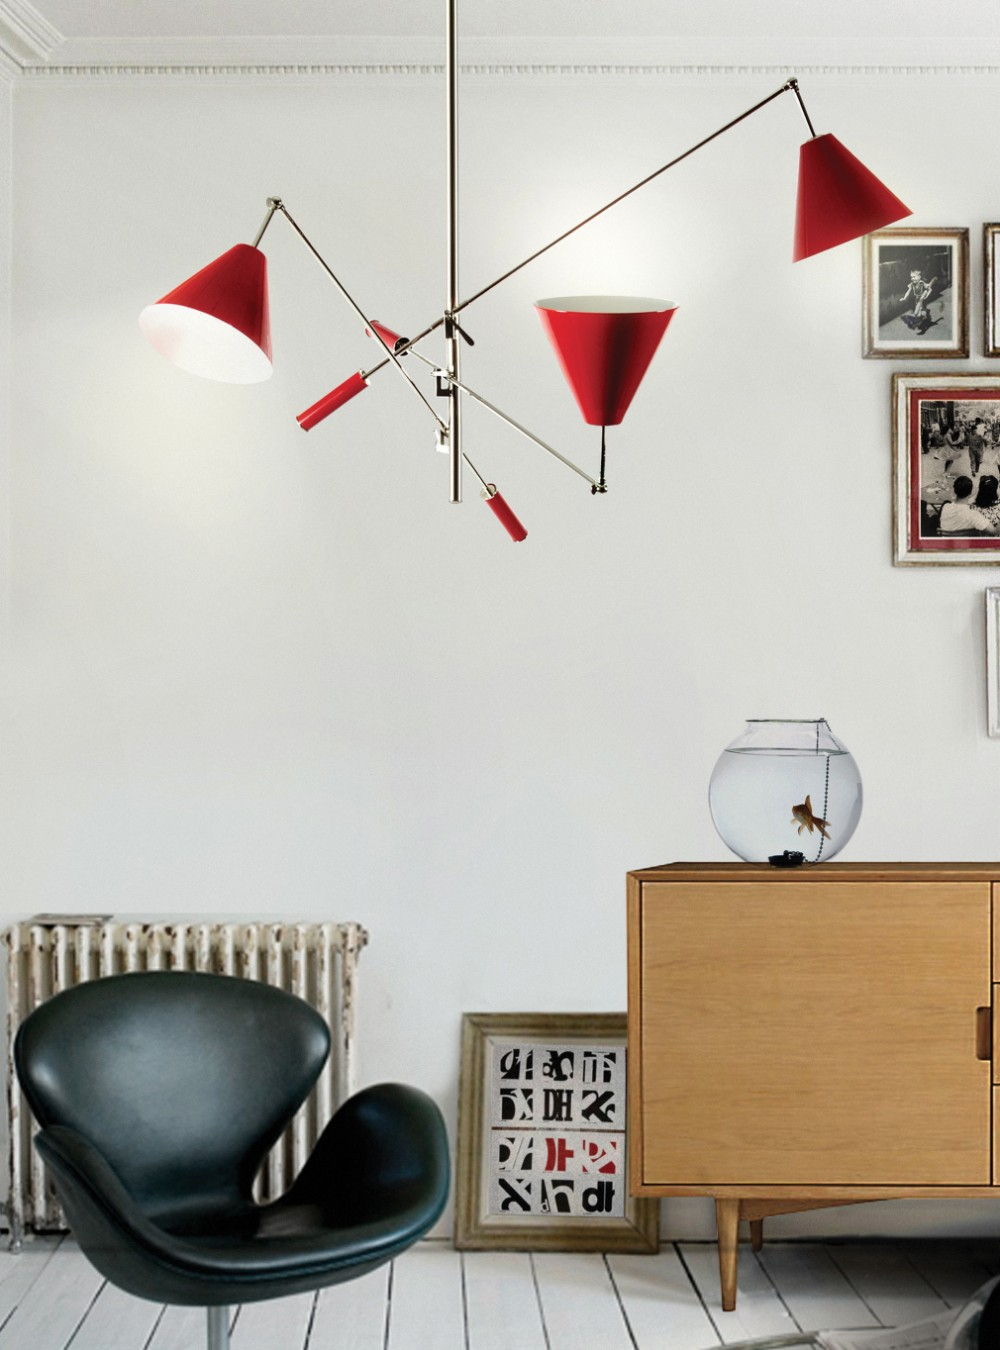 2018 Color Trends: Red Scarlet by Pantone Is on Our Radar!